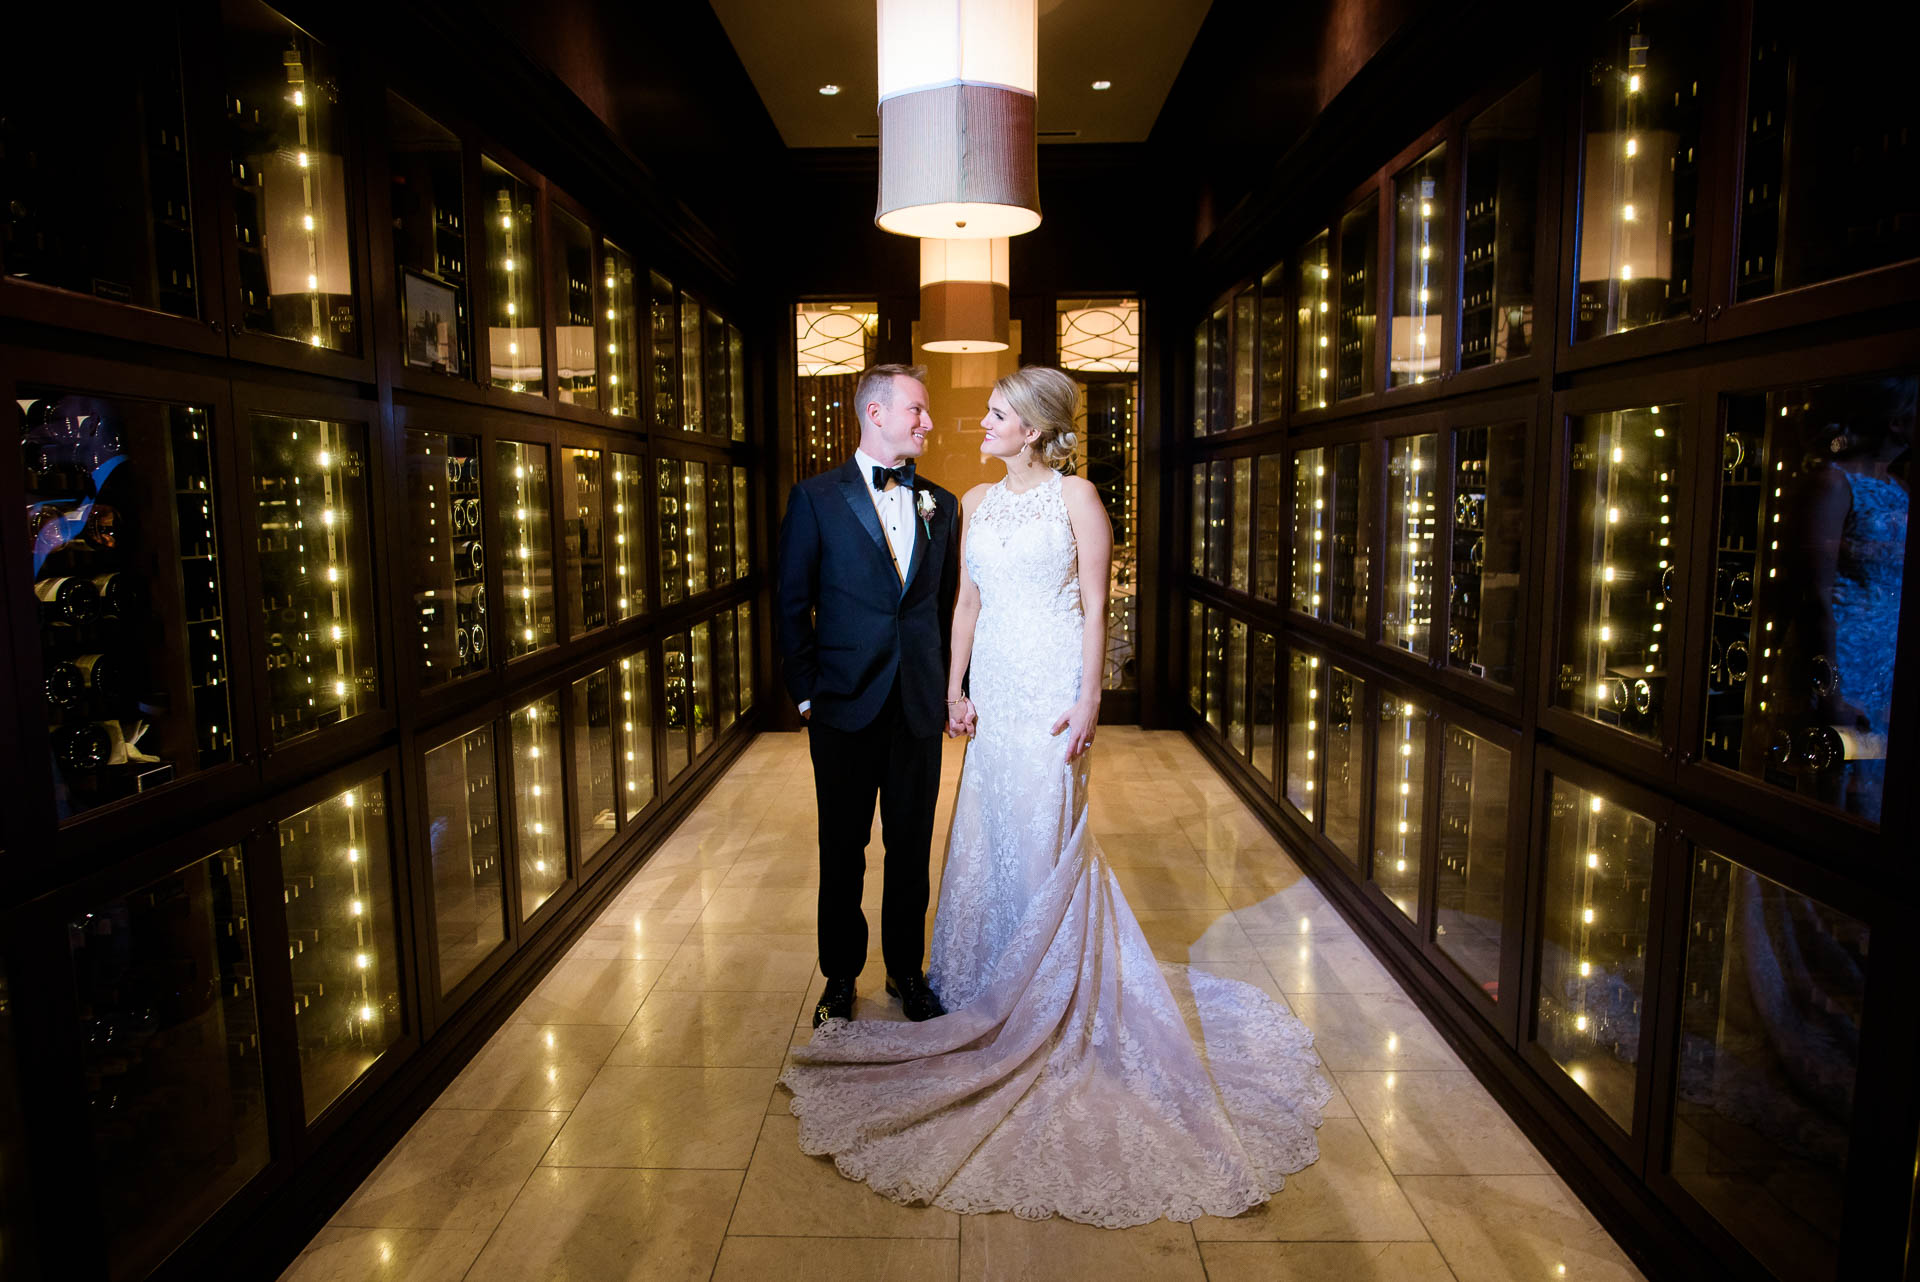 Creative wedding photo of bride and groom inside the wine cellar at the Mid America Club in Chicago.